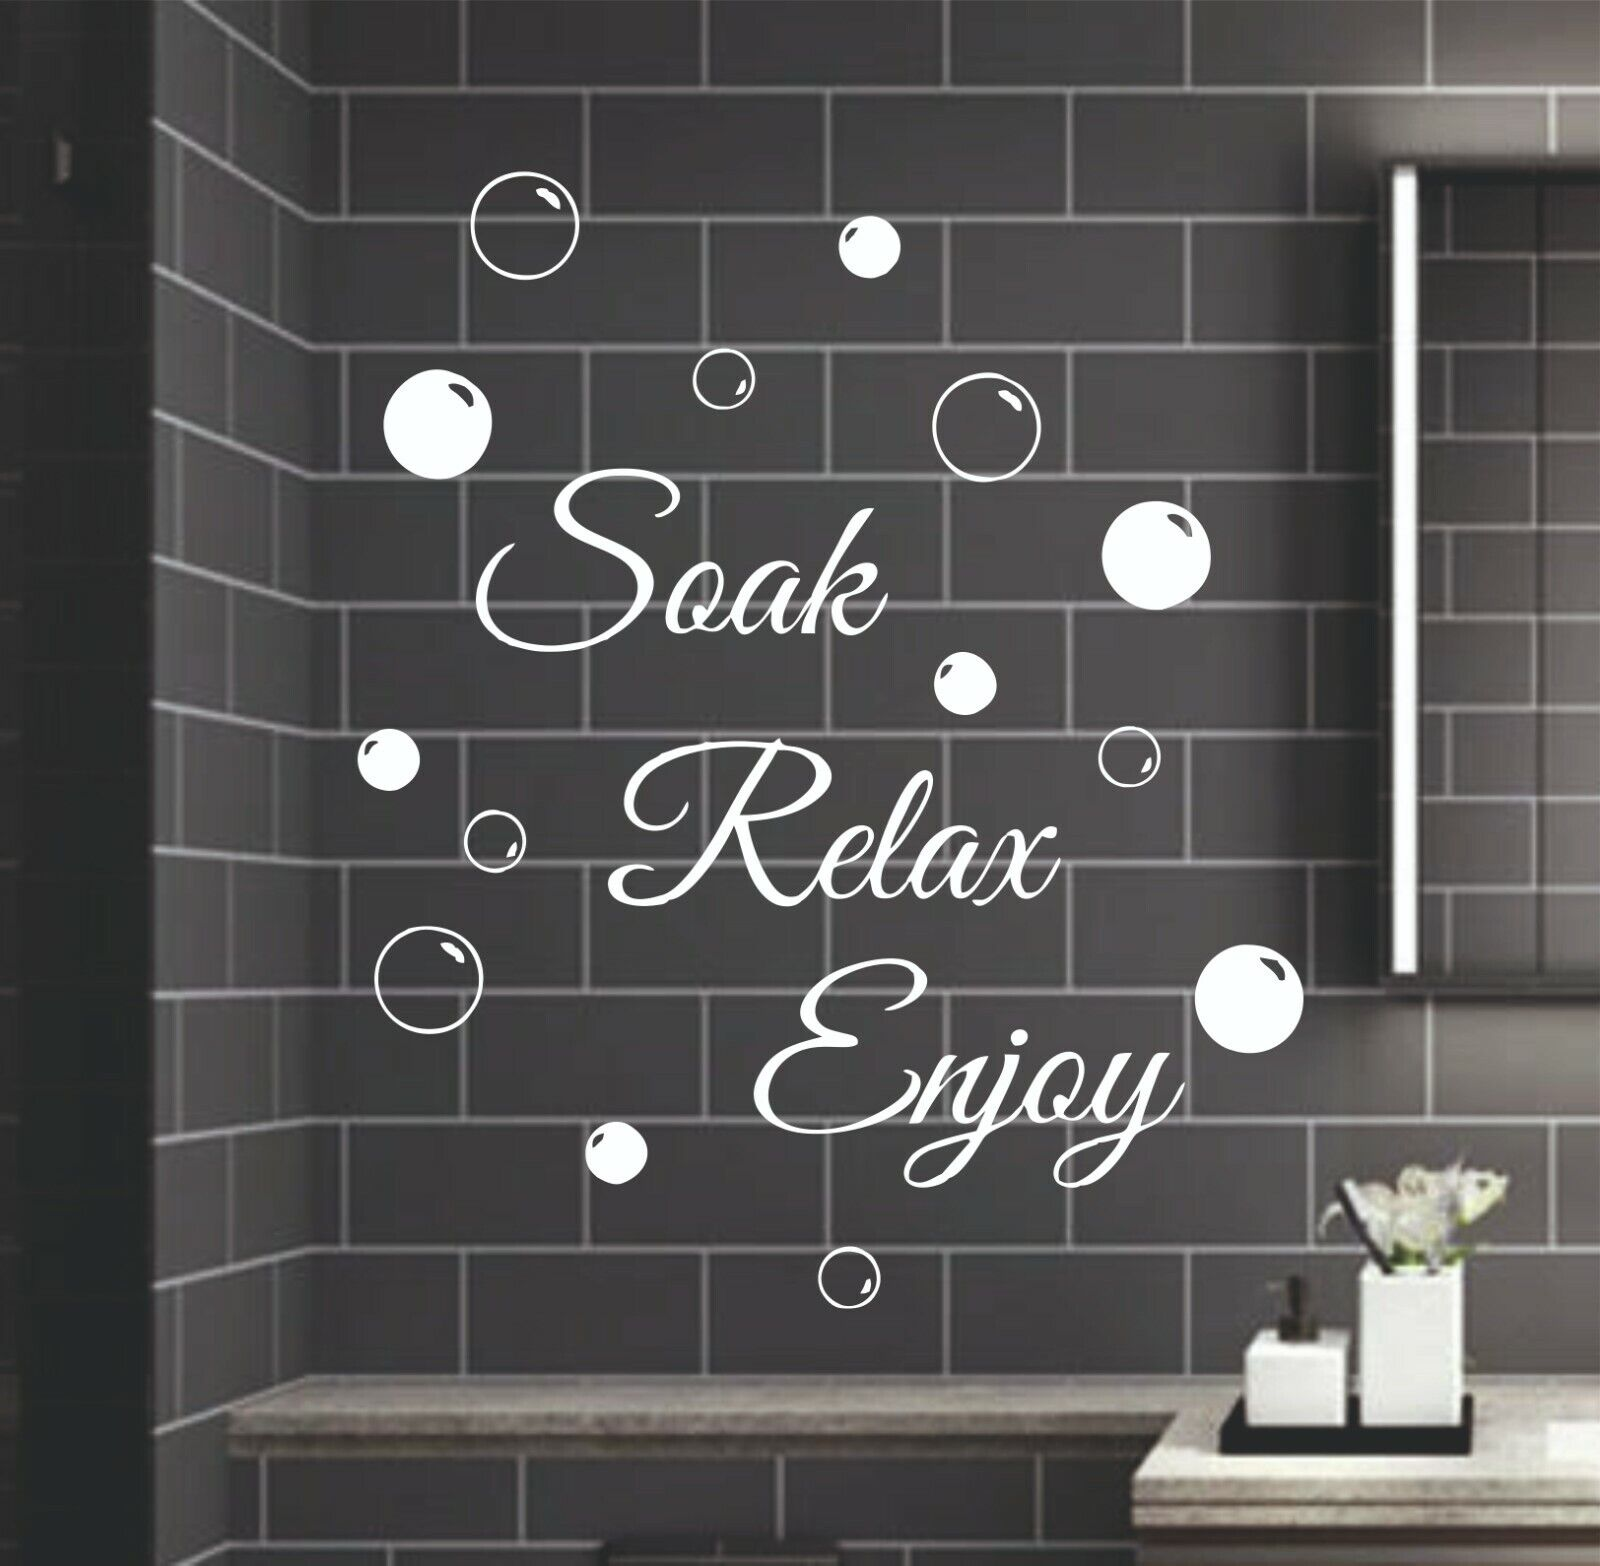 Home Decoration - Soak Relax Enjoy Wall Stickers & Bubbles Decals Bathroom Home Art Decor Small